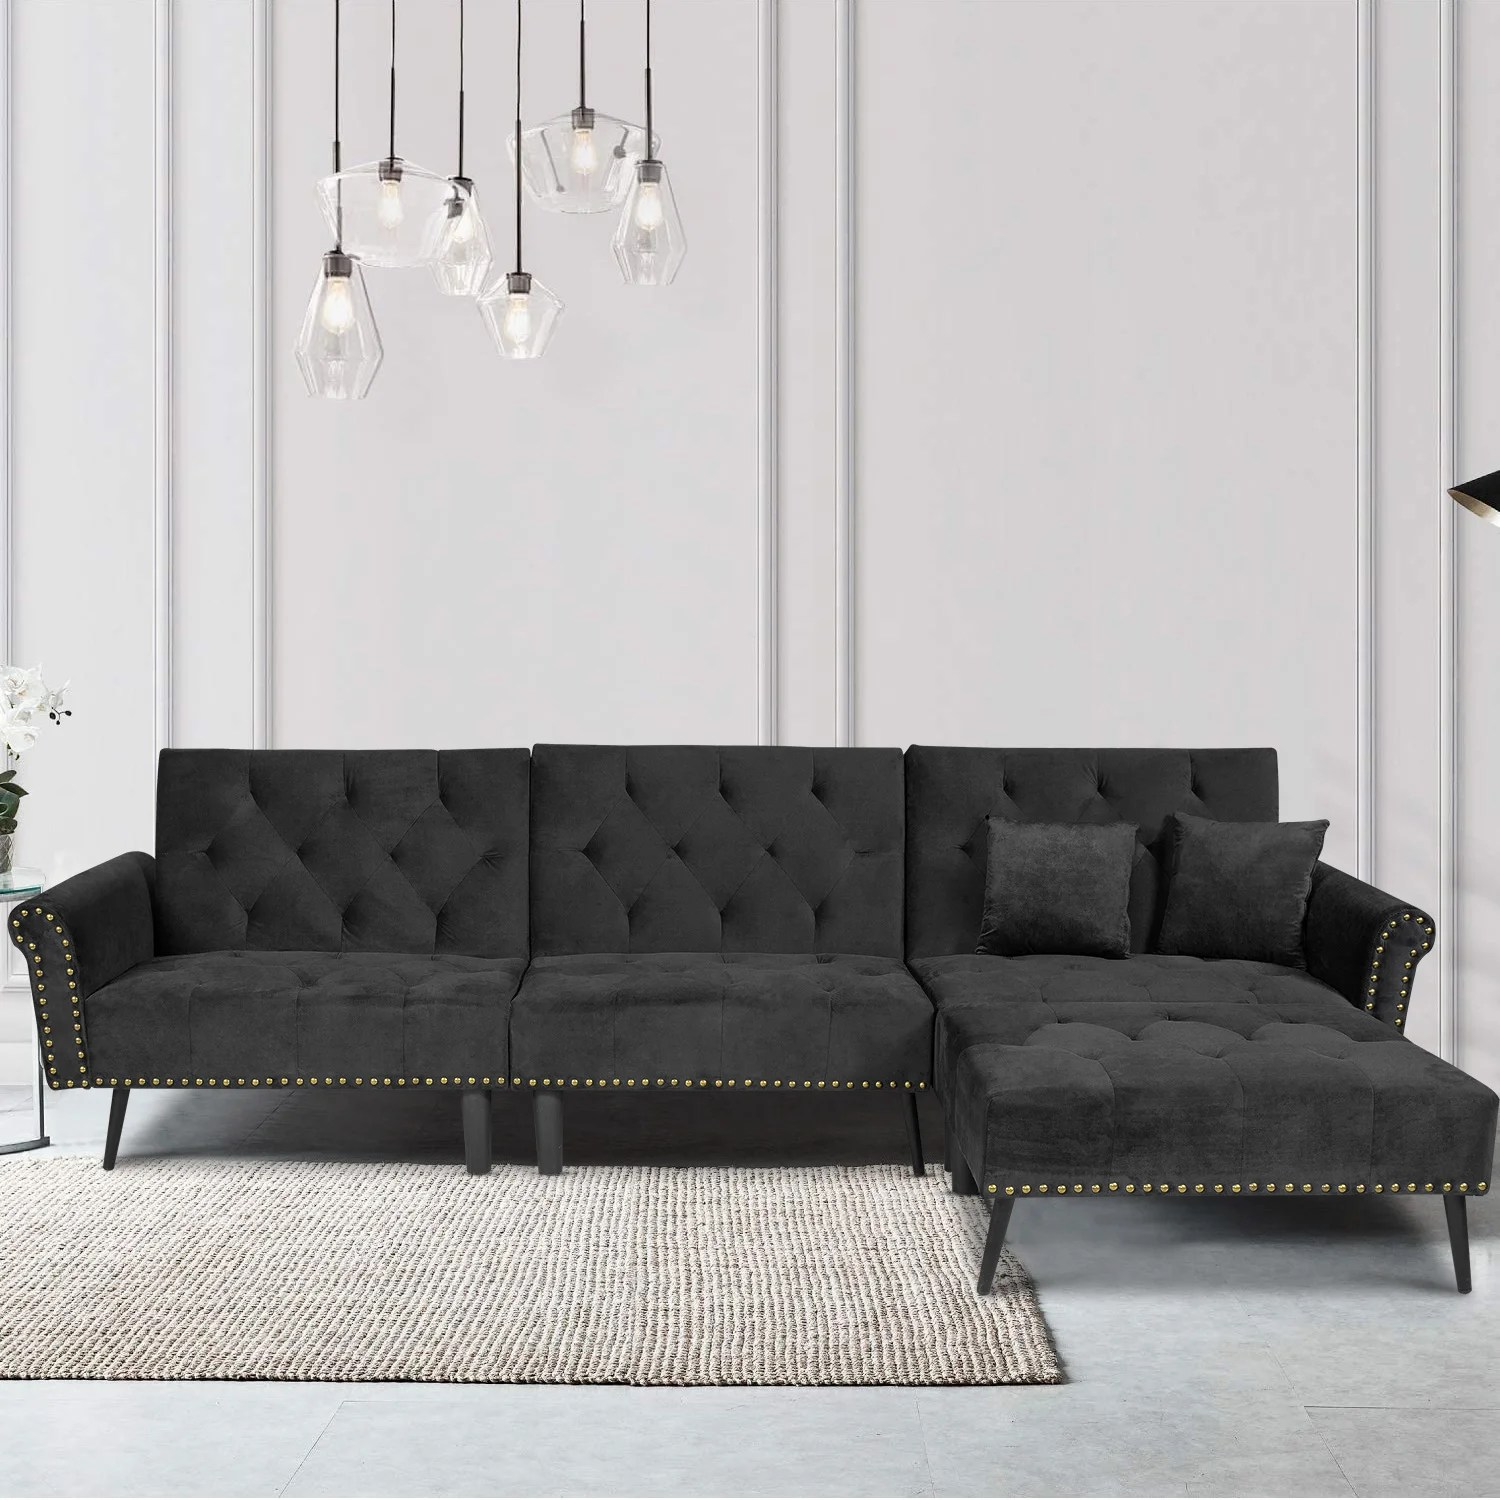 modern l shaped sectional sofa bed convertible reversible couch sleeper with chaise in microfiber and solid wood legs for living room small spaces